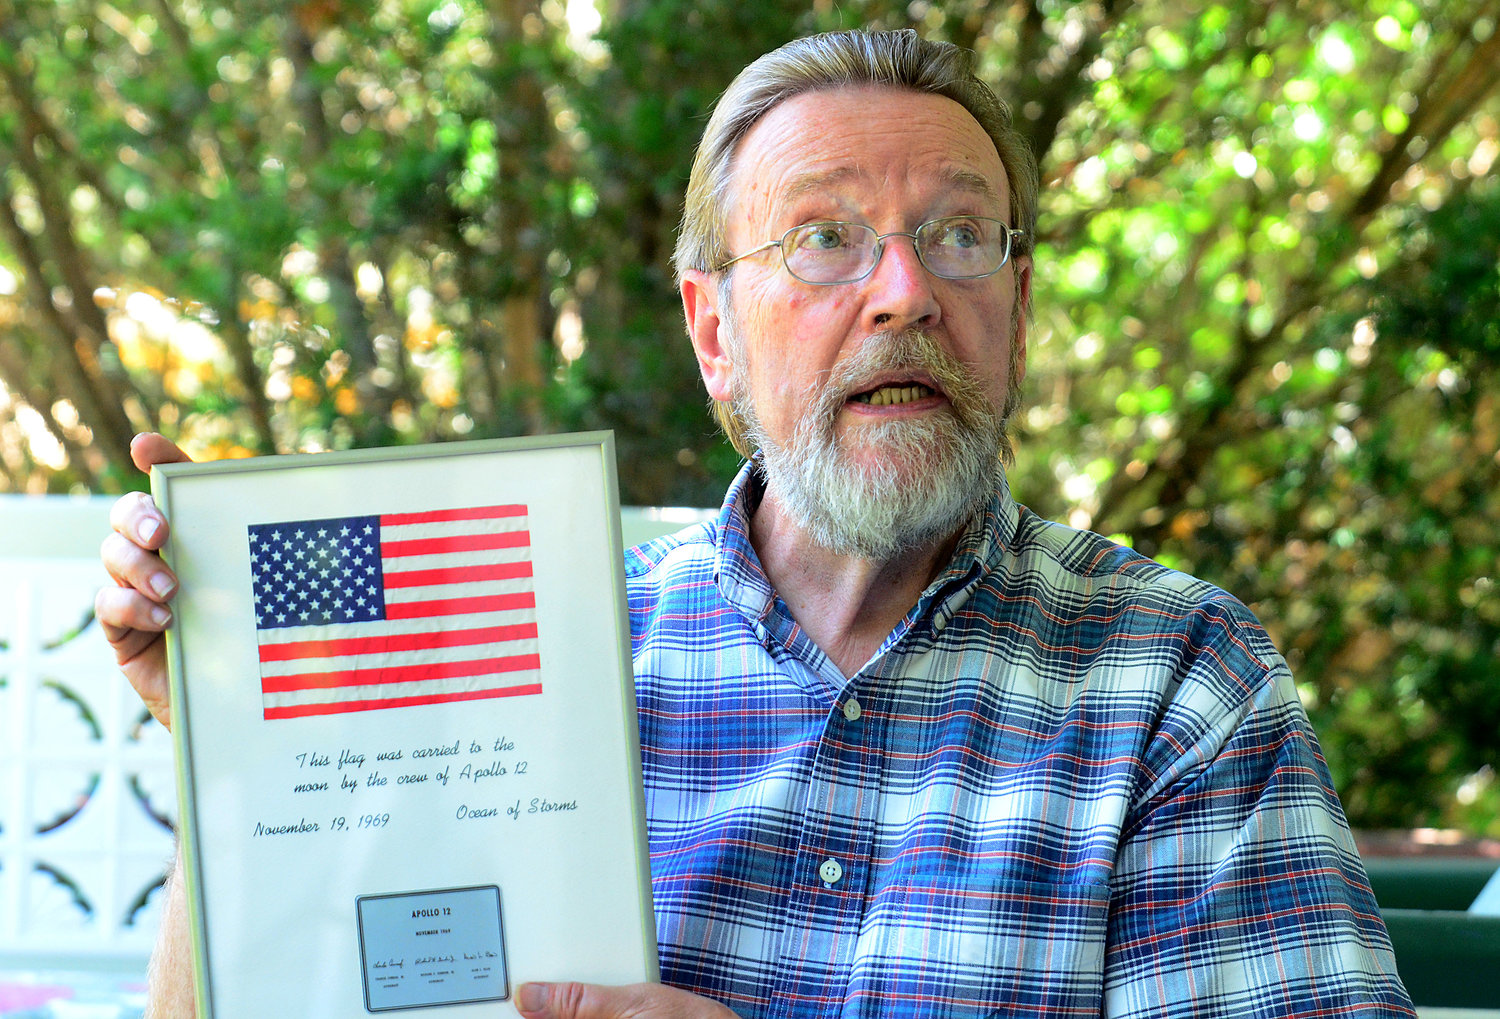 Gary Watros, holding memorabilia from one of the seminal moments in U.S. history, will be taking part in a celebration of the 50-year anniversary of the Apollo 11 landing on the Moon.